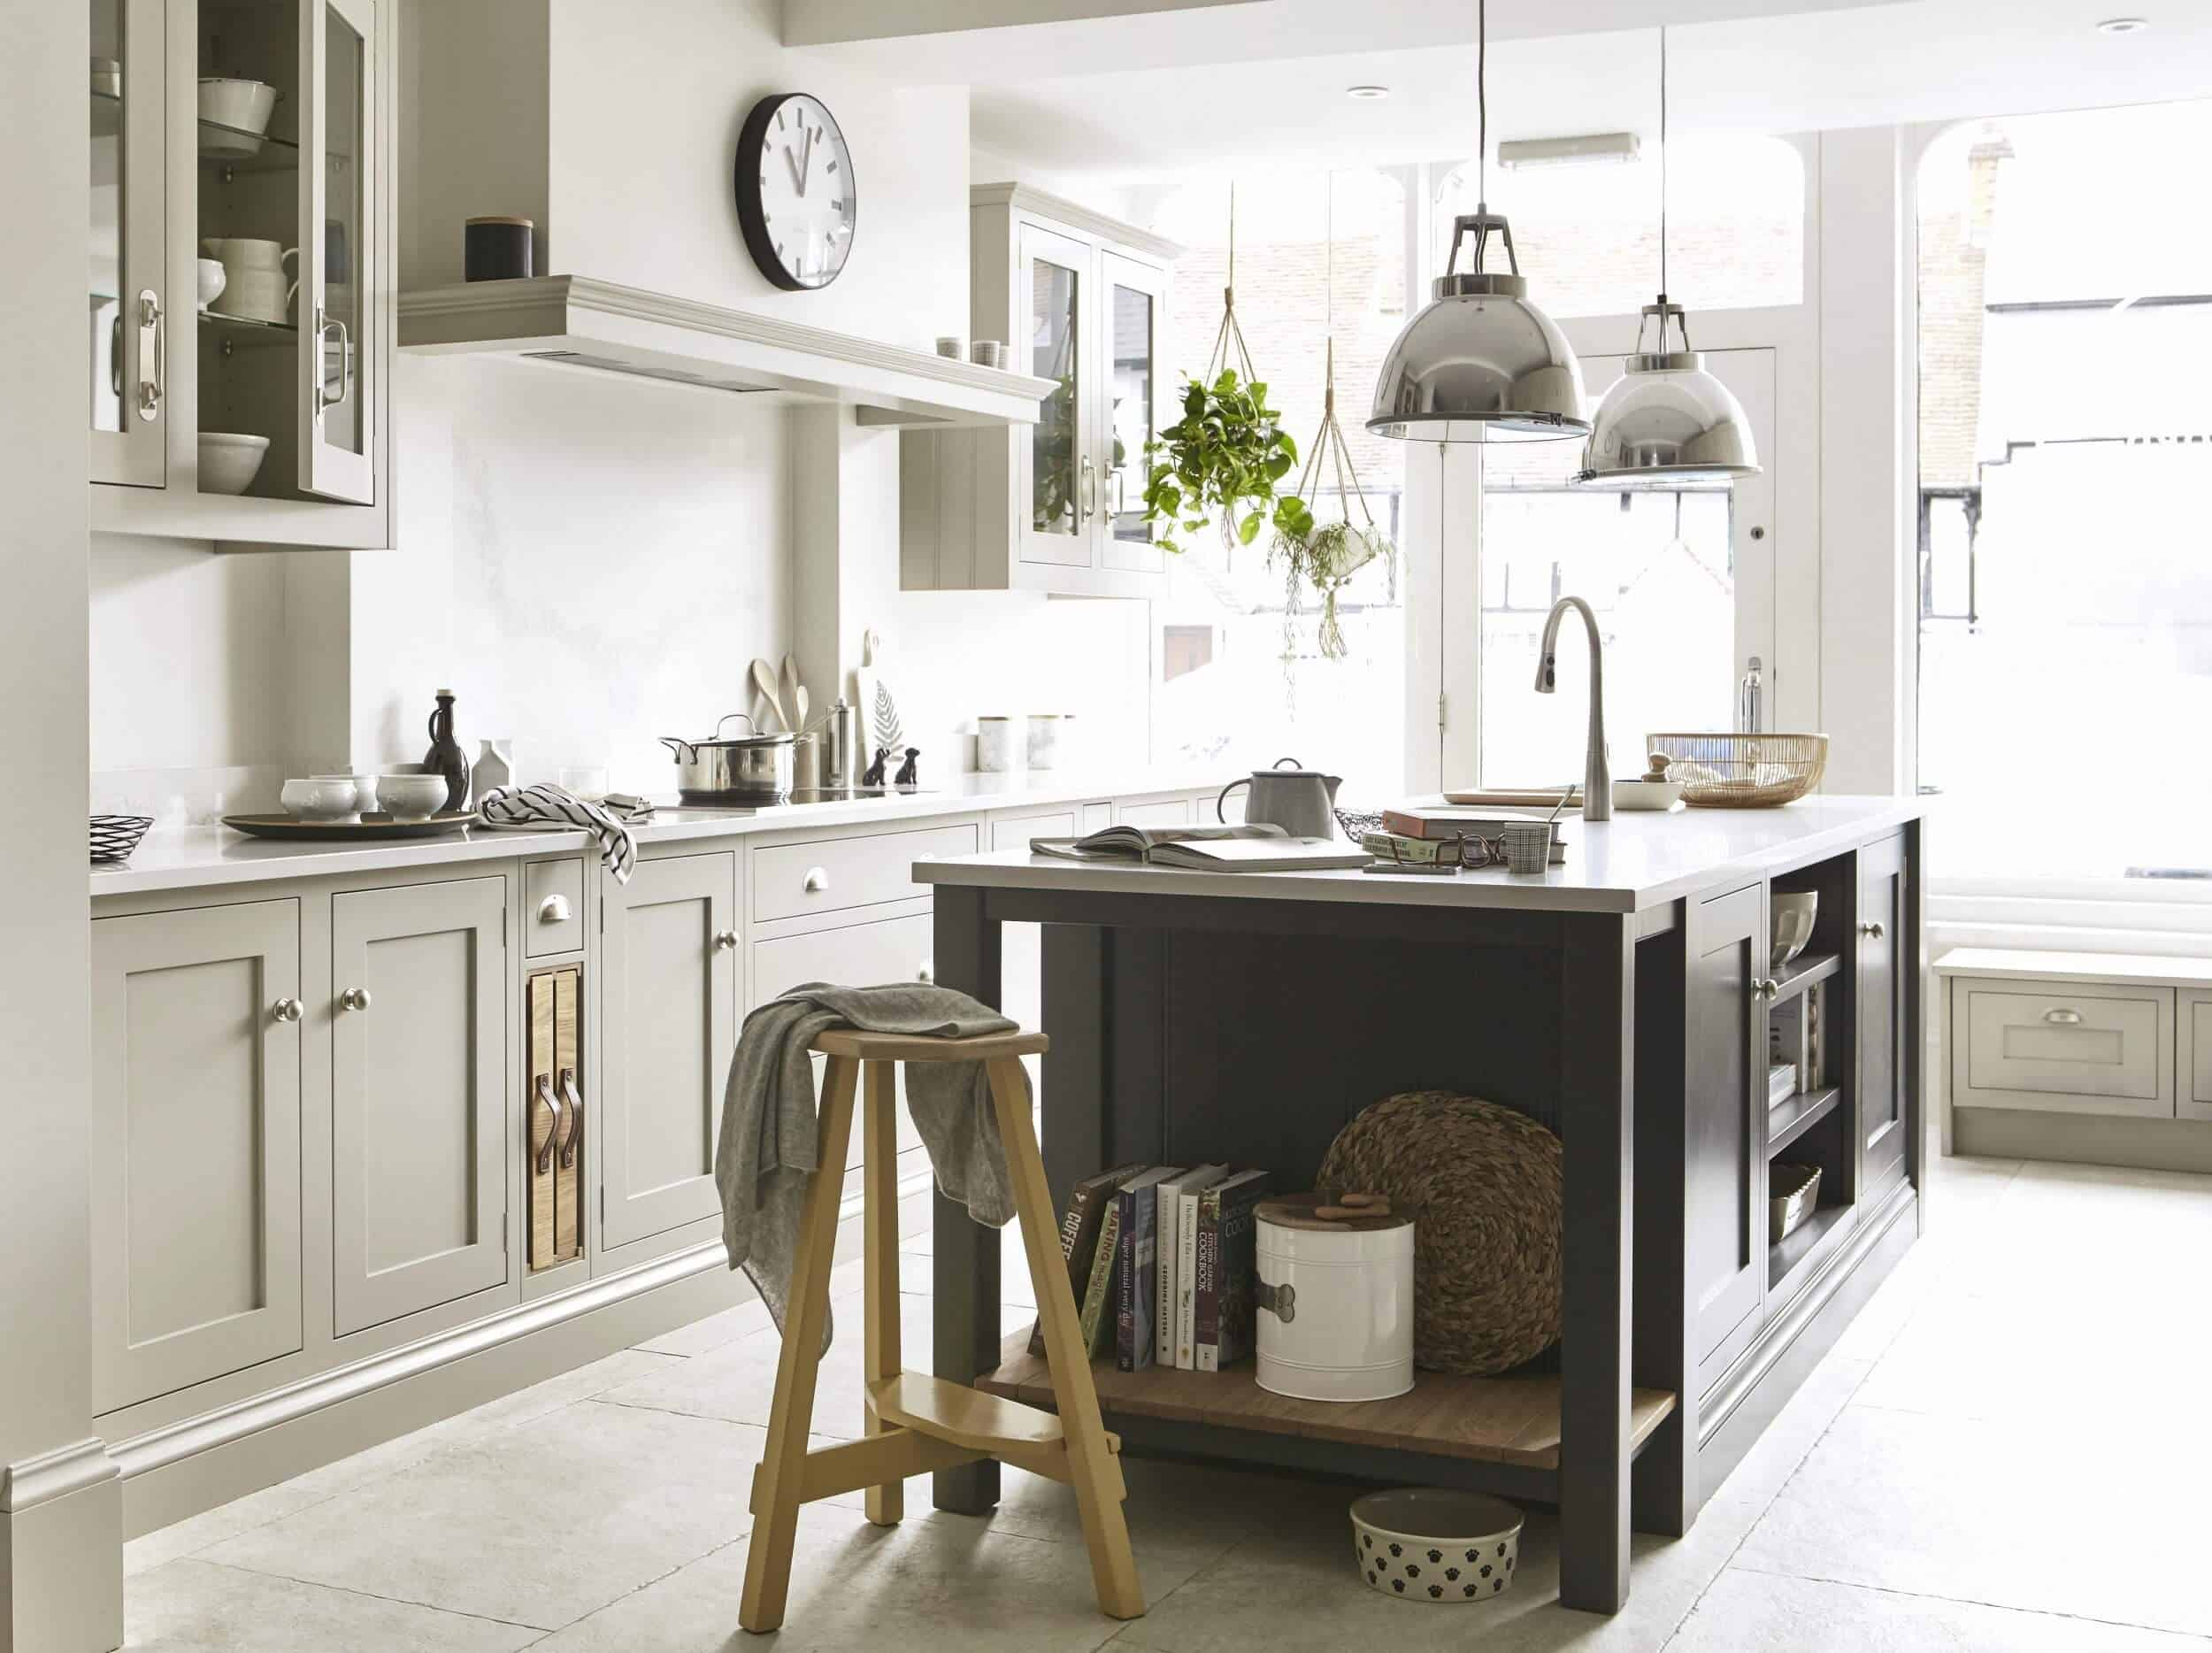 Kitchens Bedrooms Amp Furniture John Lewis Of Hungerford